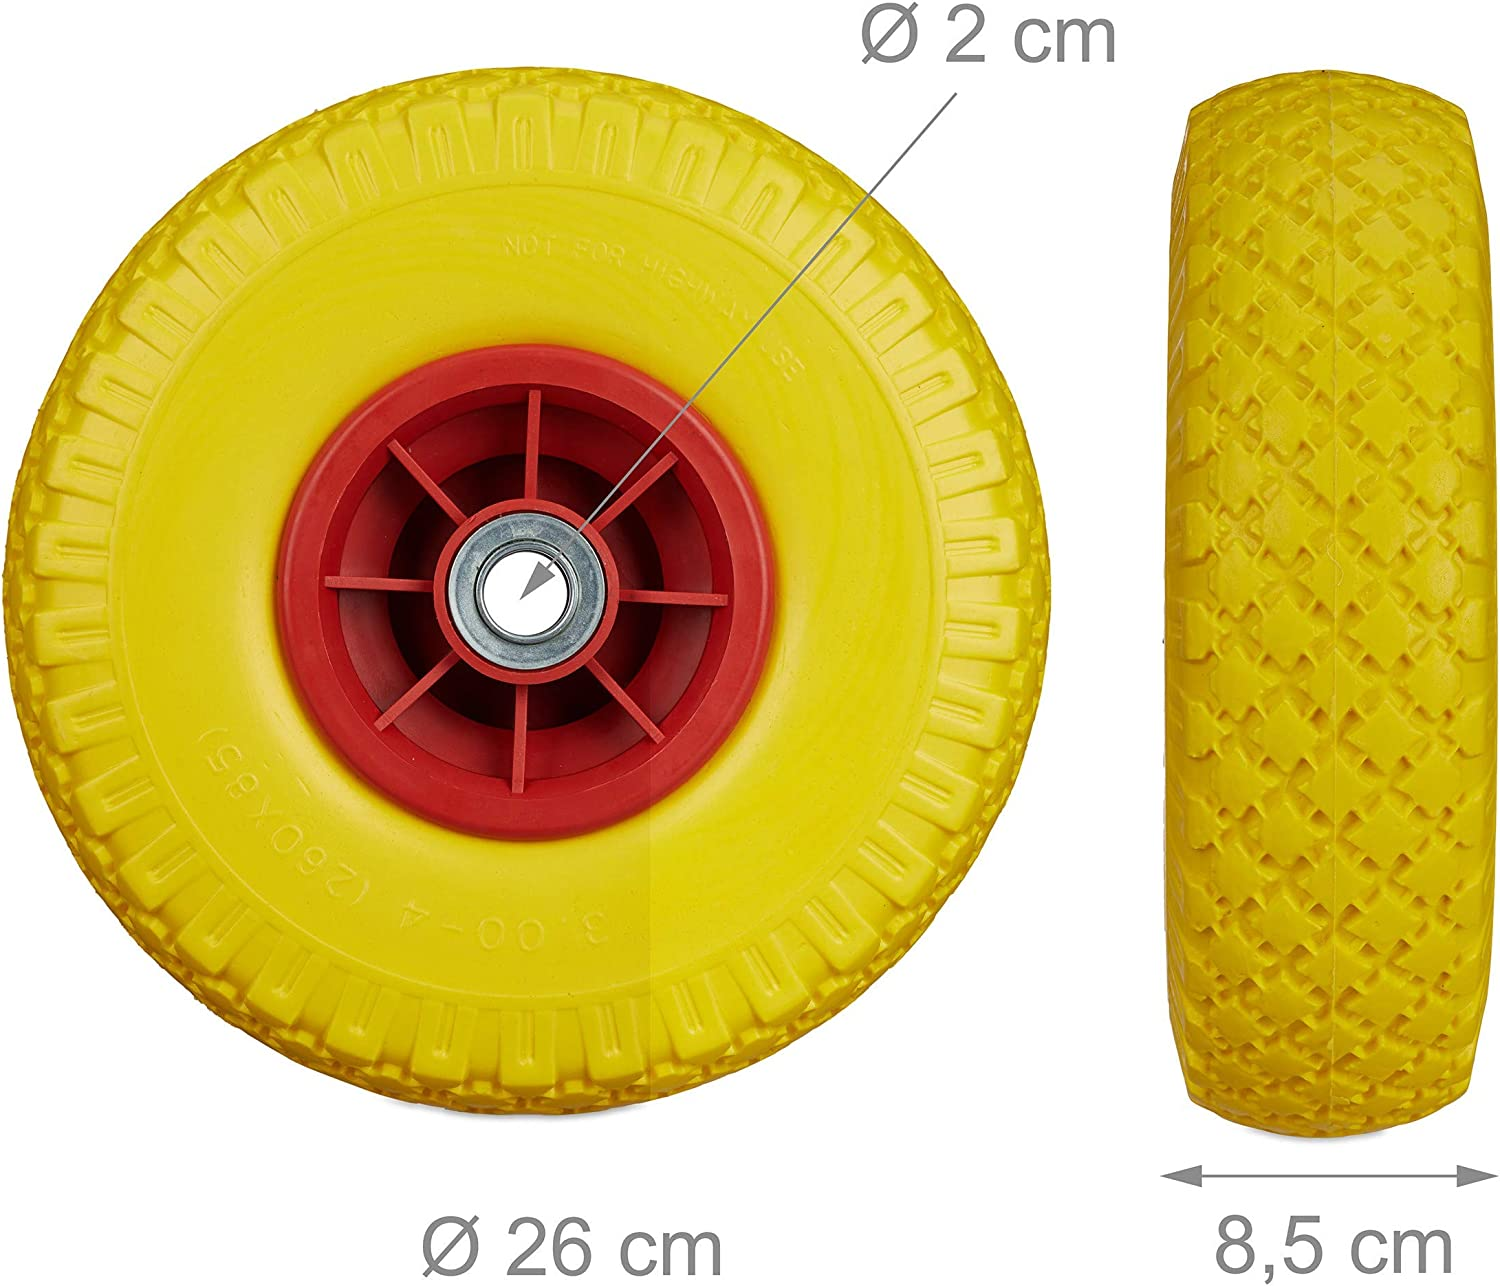 "20mm Axle Relaxdays Non-Flat Solid Rubber Wheels Black-Red 2 x Hand Truck Tyre 260 x 85 mm 3.00-4/"" 80 kg"